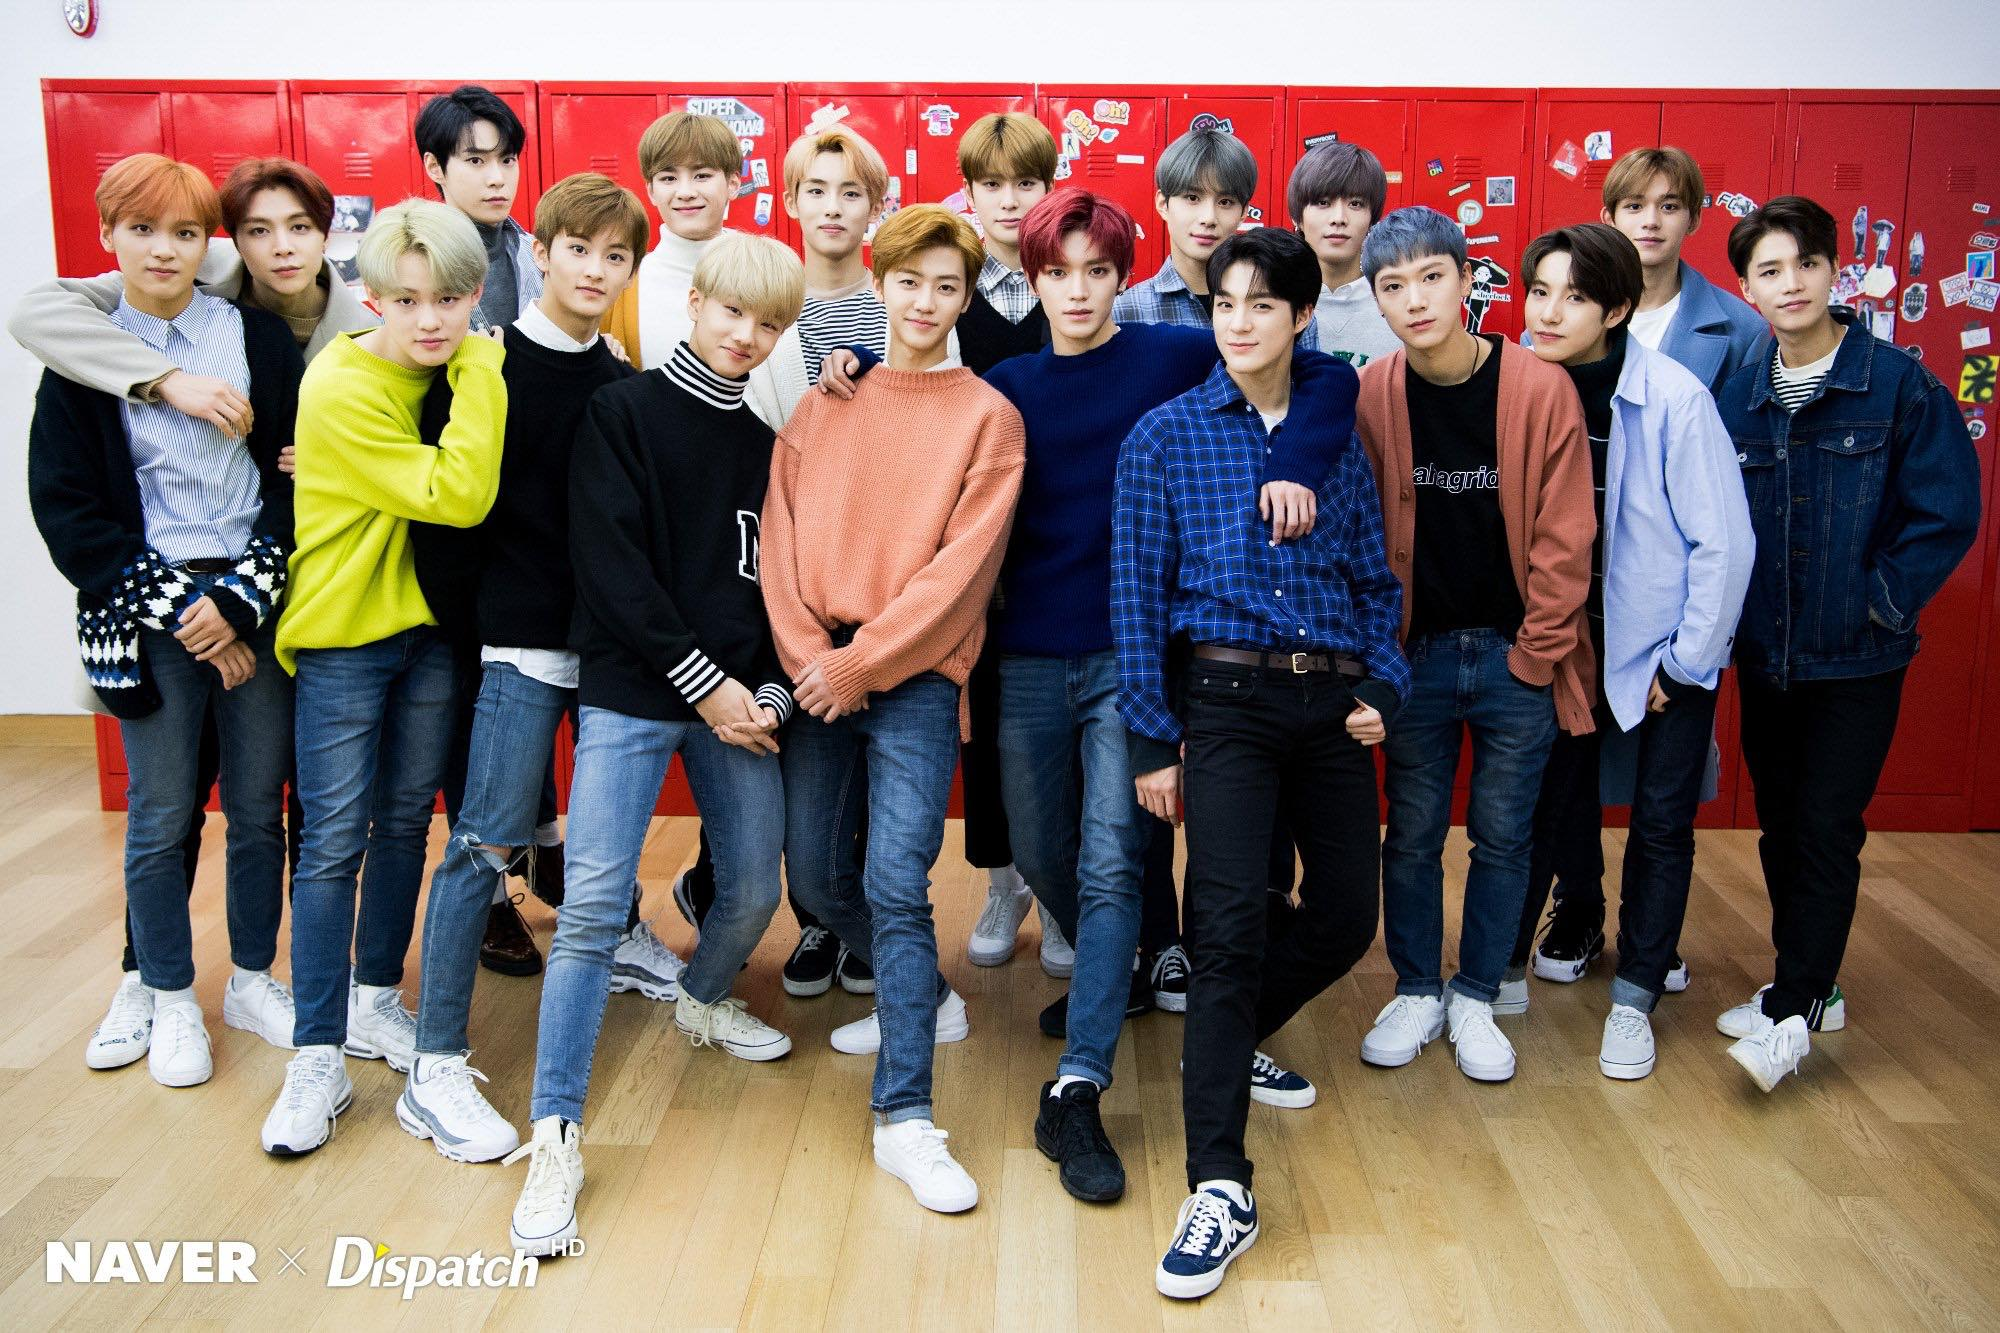 nct, nct profile, nct 2018, nct 2018 profile, nct 2018 member, nct dream, nct dream profile, nct u, nct u profile, all nct 2018 members, nct 2018 photos, nct 2018 photoshoot, nct 2018 profile photo, nct 2018 mark photoshoot, nct taeyong photoshoot, nct jeno photoshoot, nct doyoung photoshoot, nct haechan photoshoot, nct jaemin photoshoot, nct renjun photoshoot, nct johnny photoshoot, nct chenle photoshoot, nct jungwoo photoshoot, nct jaehyun photoshoot, nct taeil photoshoot, nct winwin photoshoot, nct ten photoshoot, nct lucas photoshoot, nct yuta photoshoot, nct kun photoshoot, nct jisung photoshoot